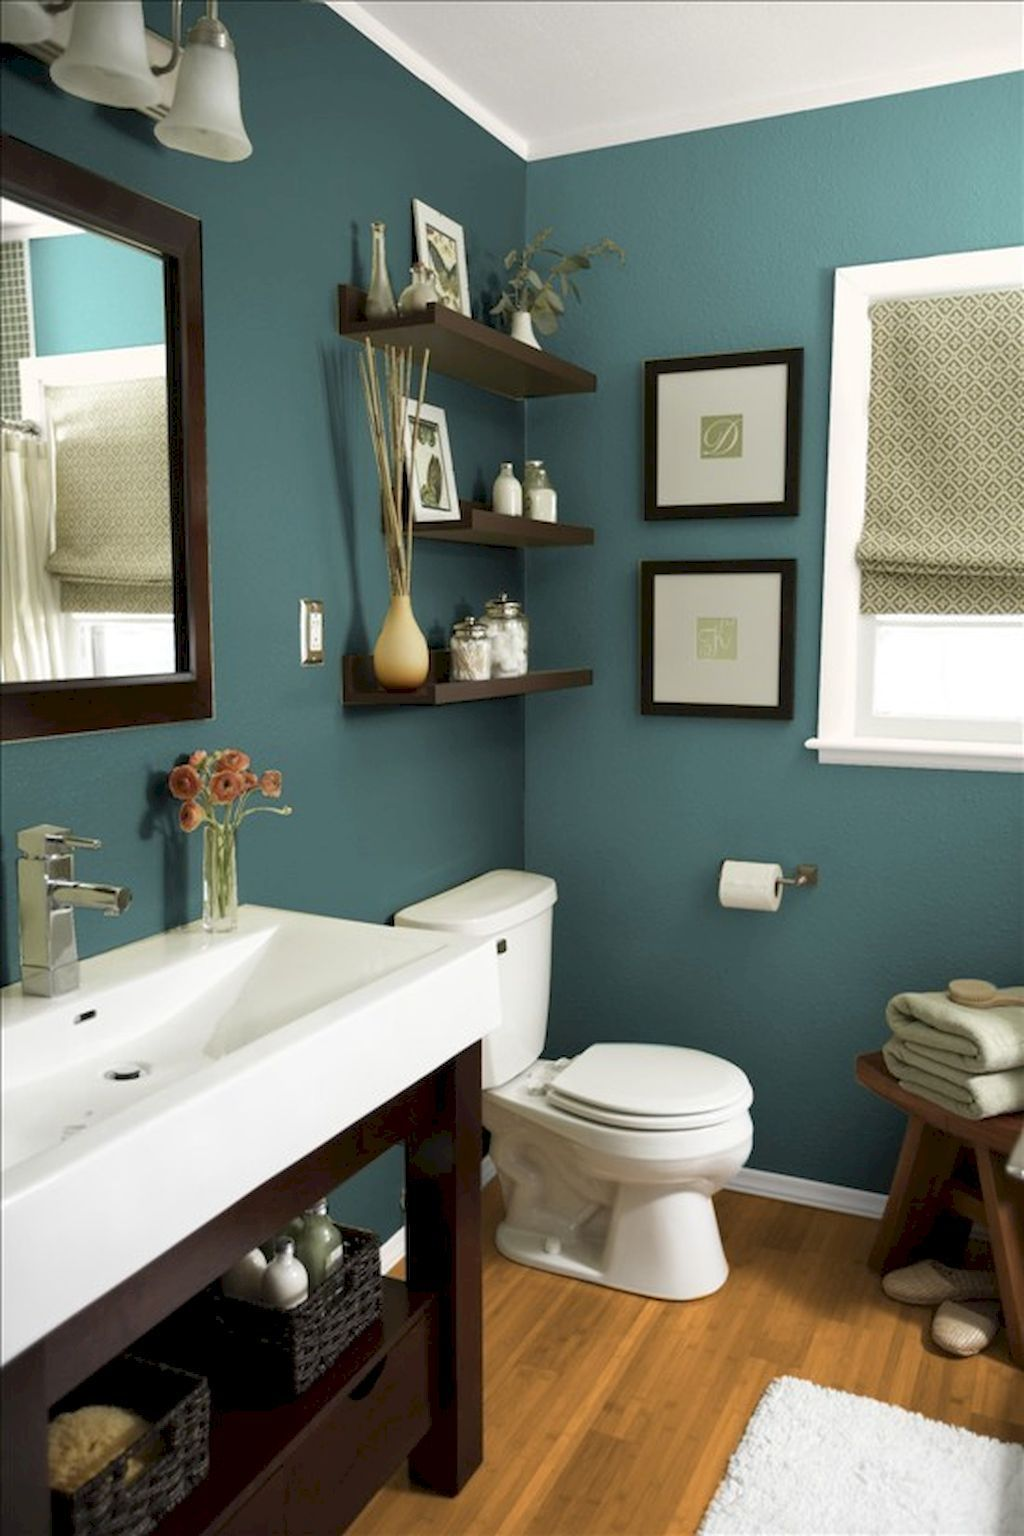 Awesome 78 Amazing Blue Hued Bathroom Remodel Ideas https://homeastern.com/2017/07/11/78-amazing-blue-hued-bathroom-remodel-ideas/